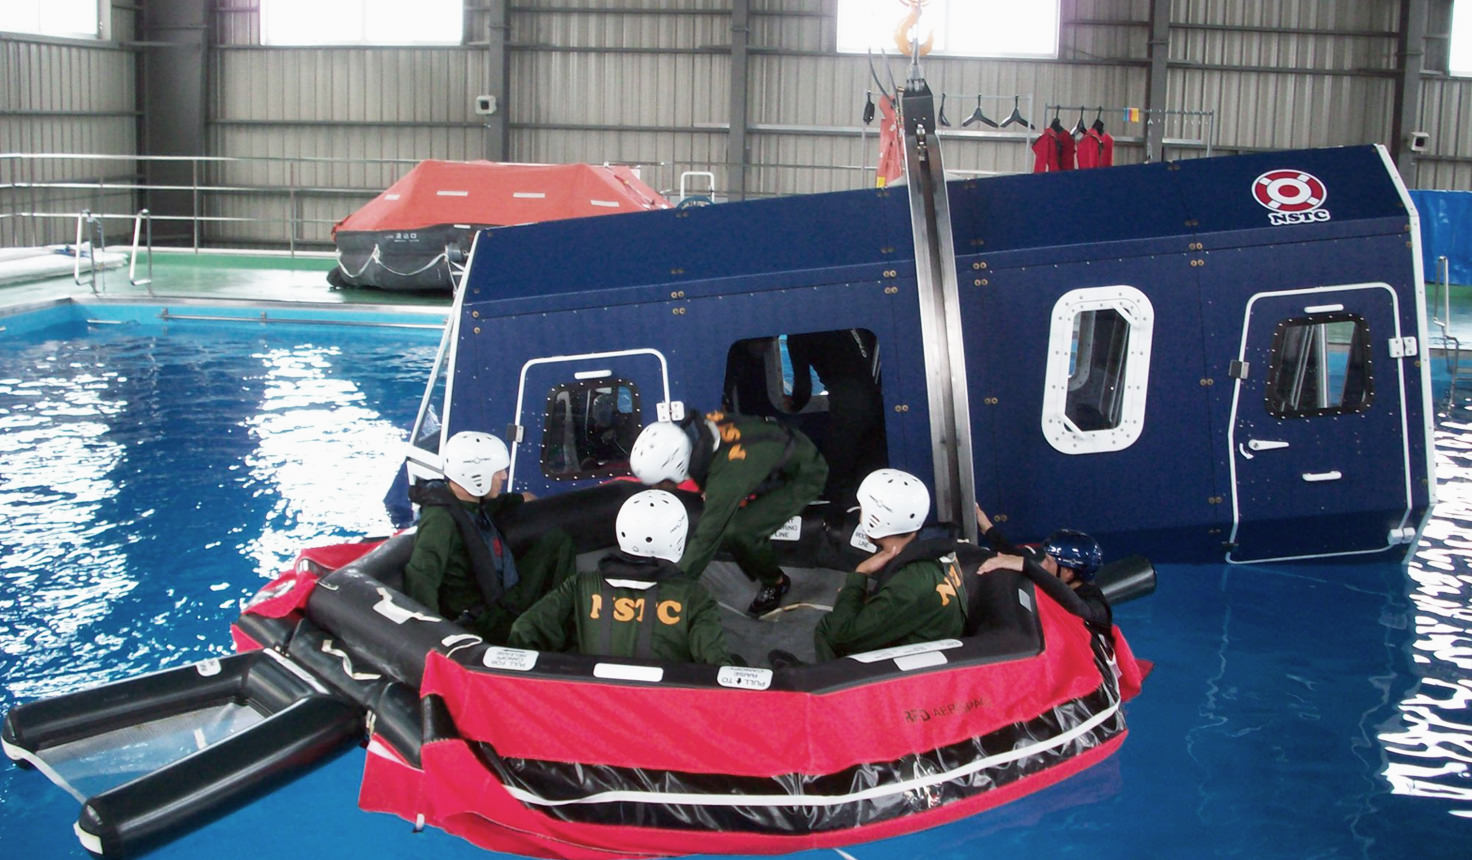 Helicopter water submersion escape training